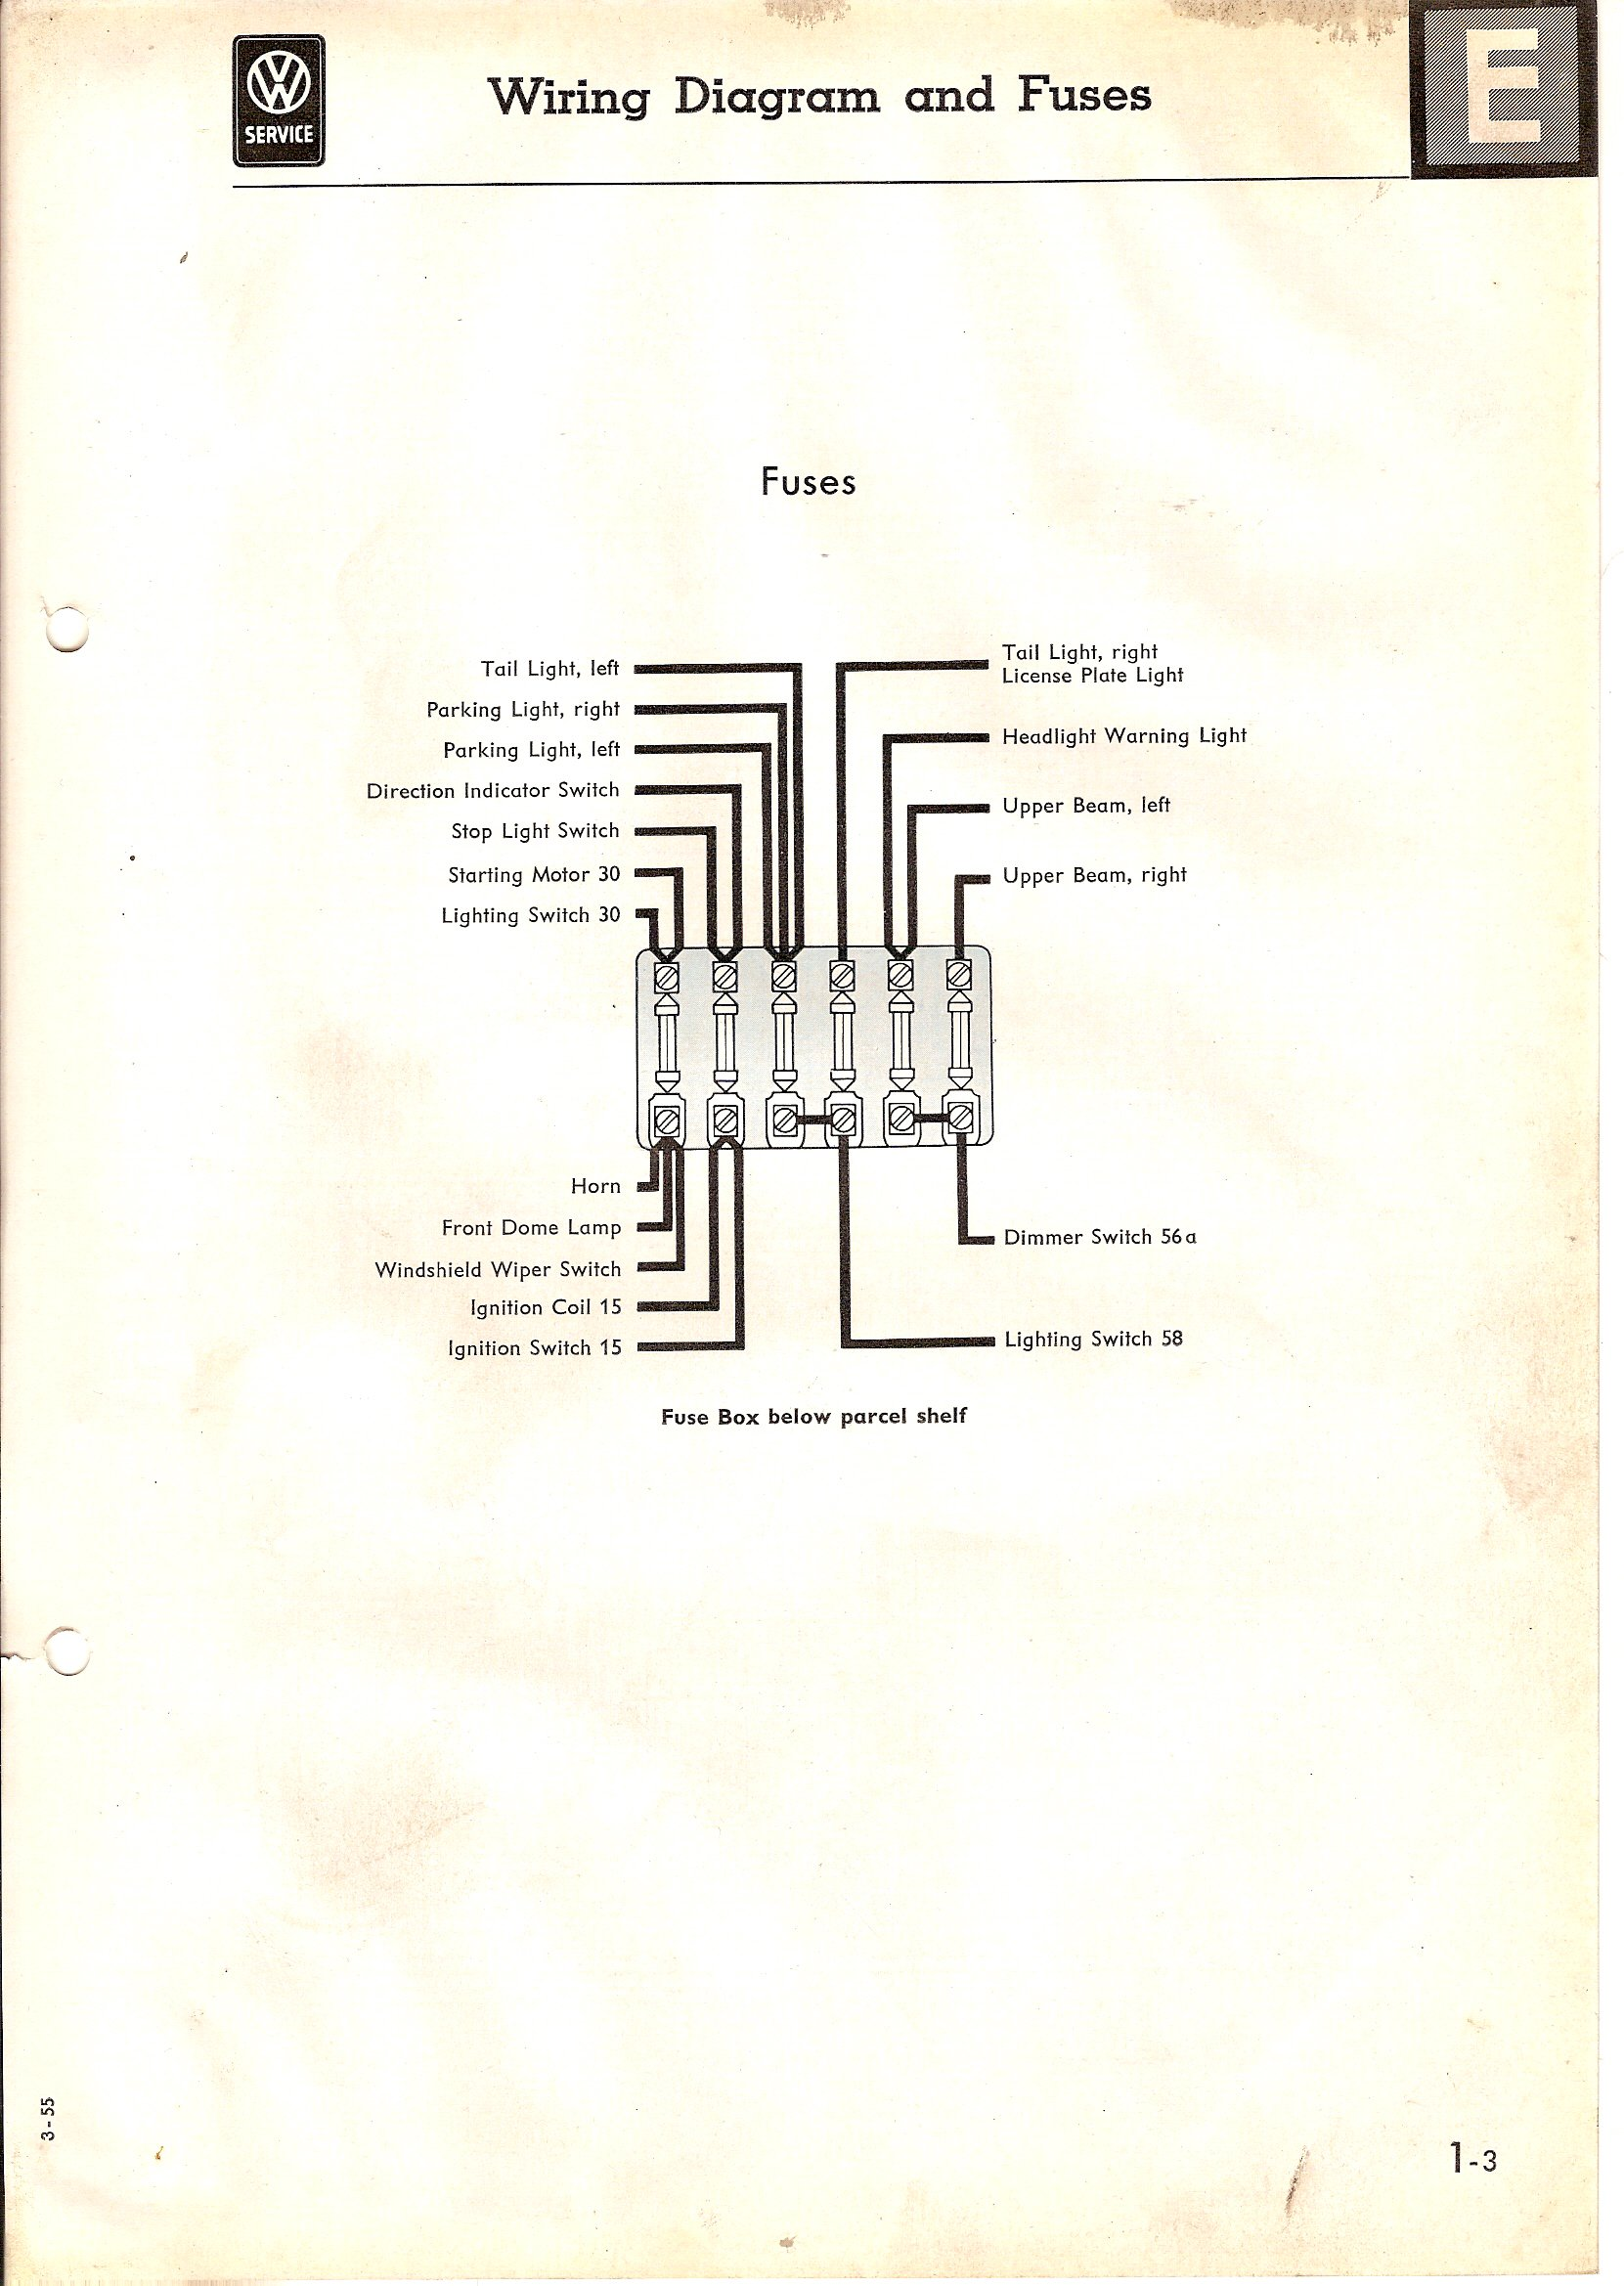 Type 2 Wiring Diagrams 68 Camaro Dome Light Diagram 1955 March Turn Signal